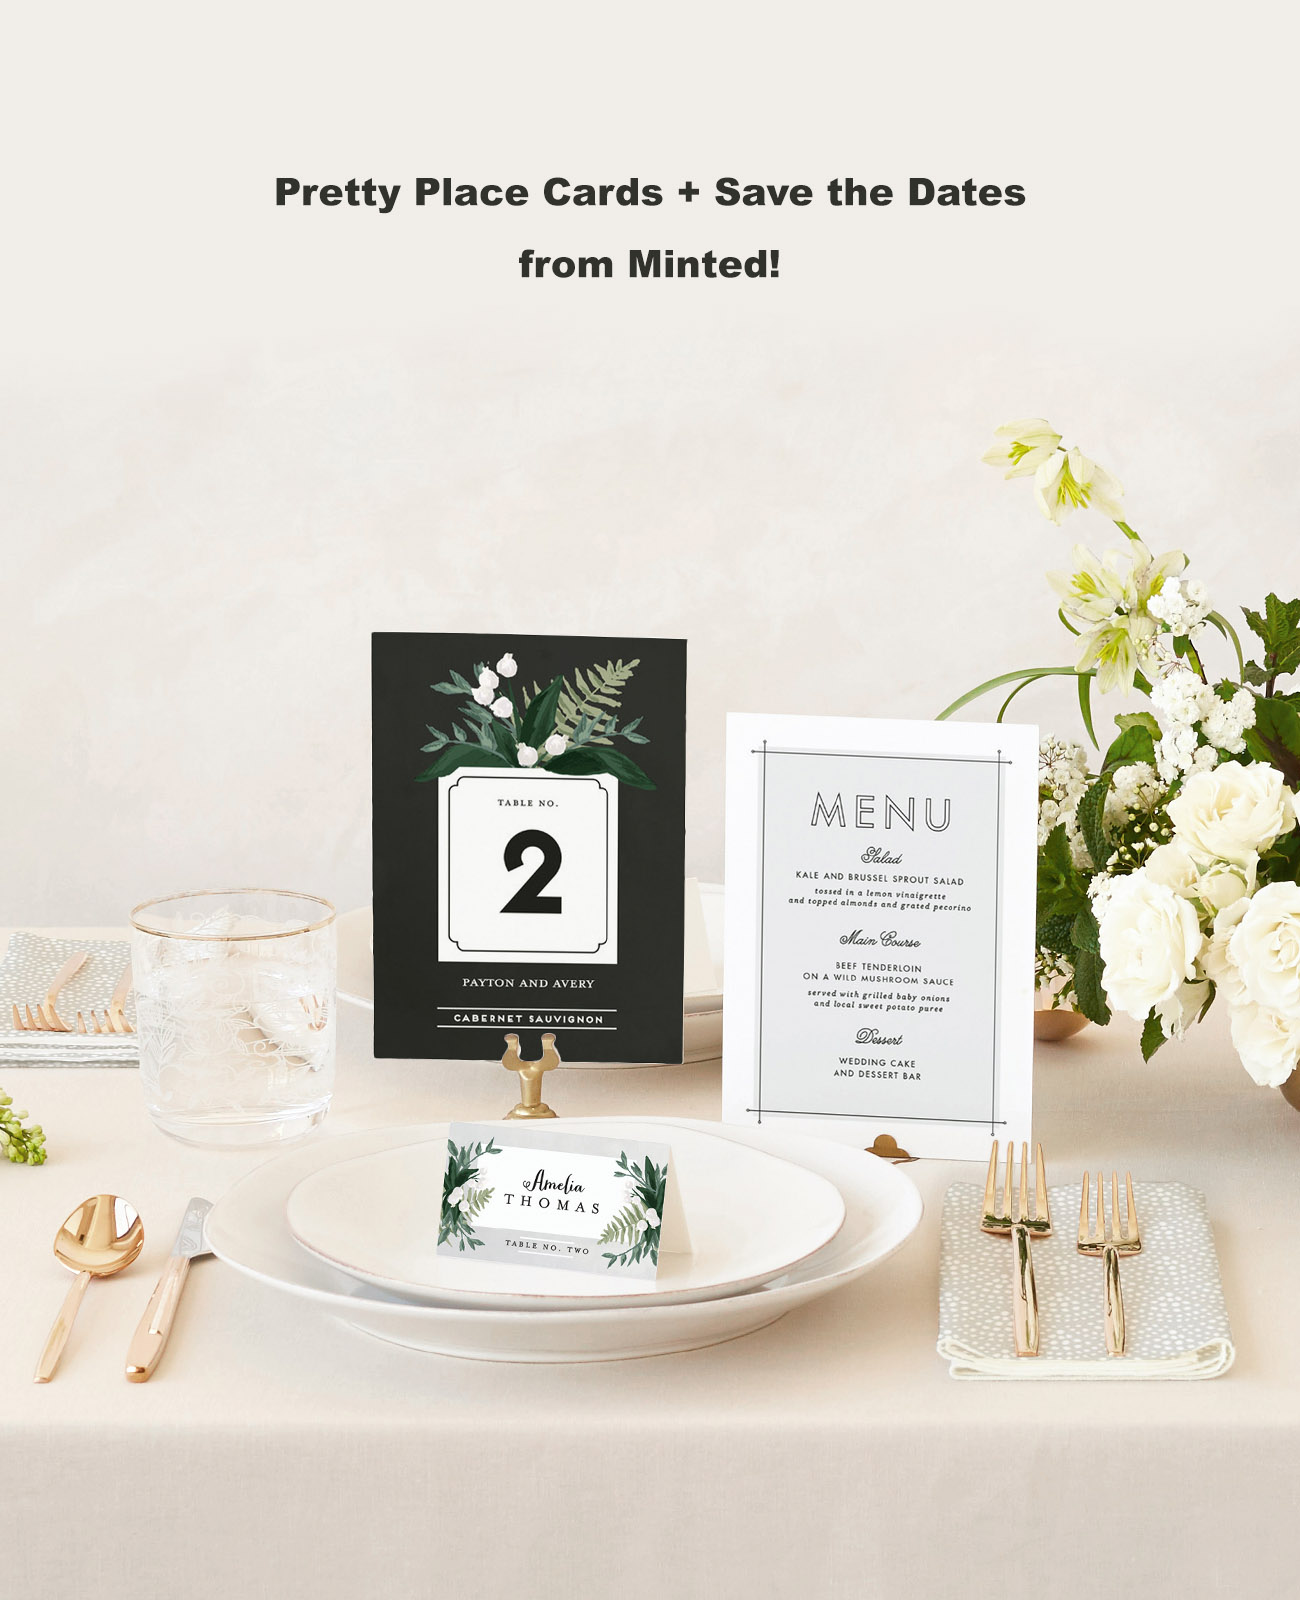 Minted Place Cards and Save the Dates